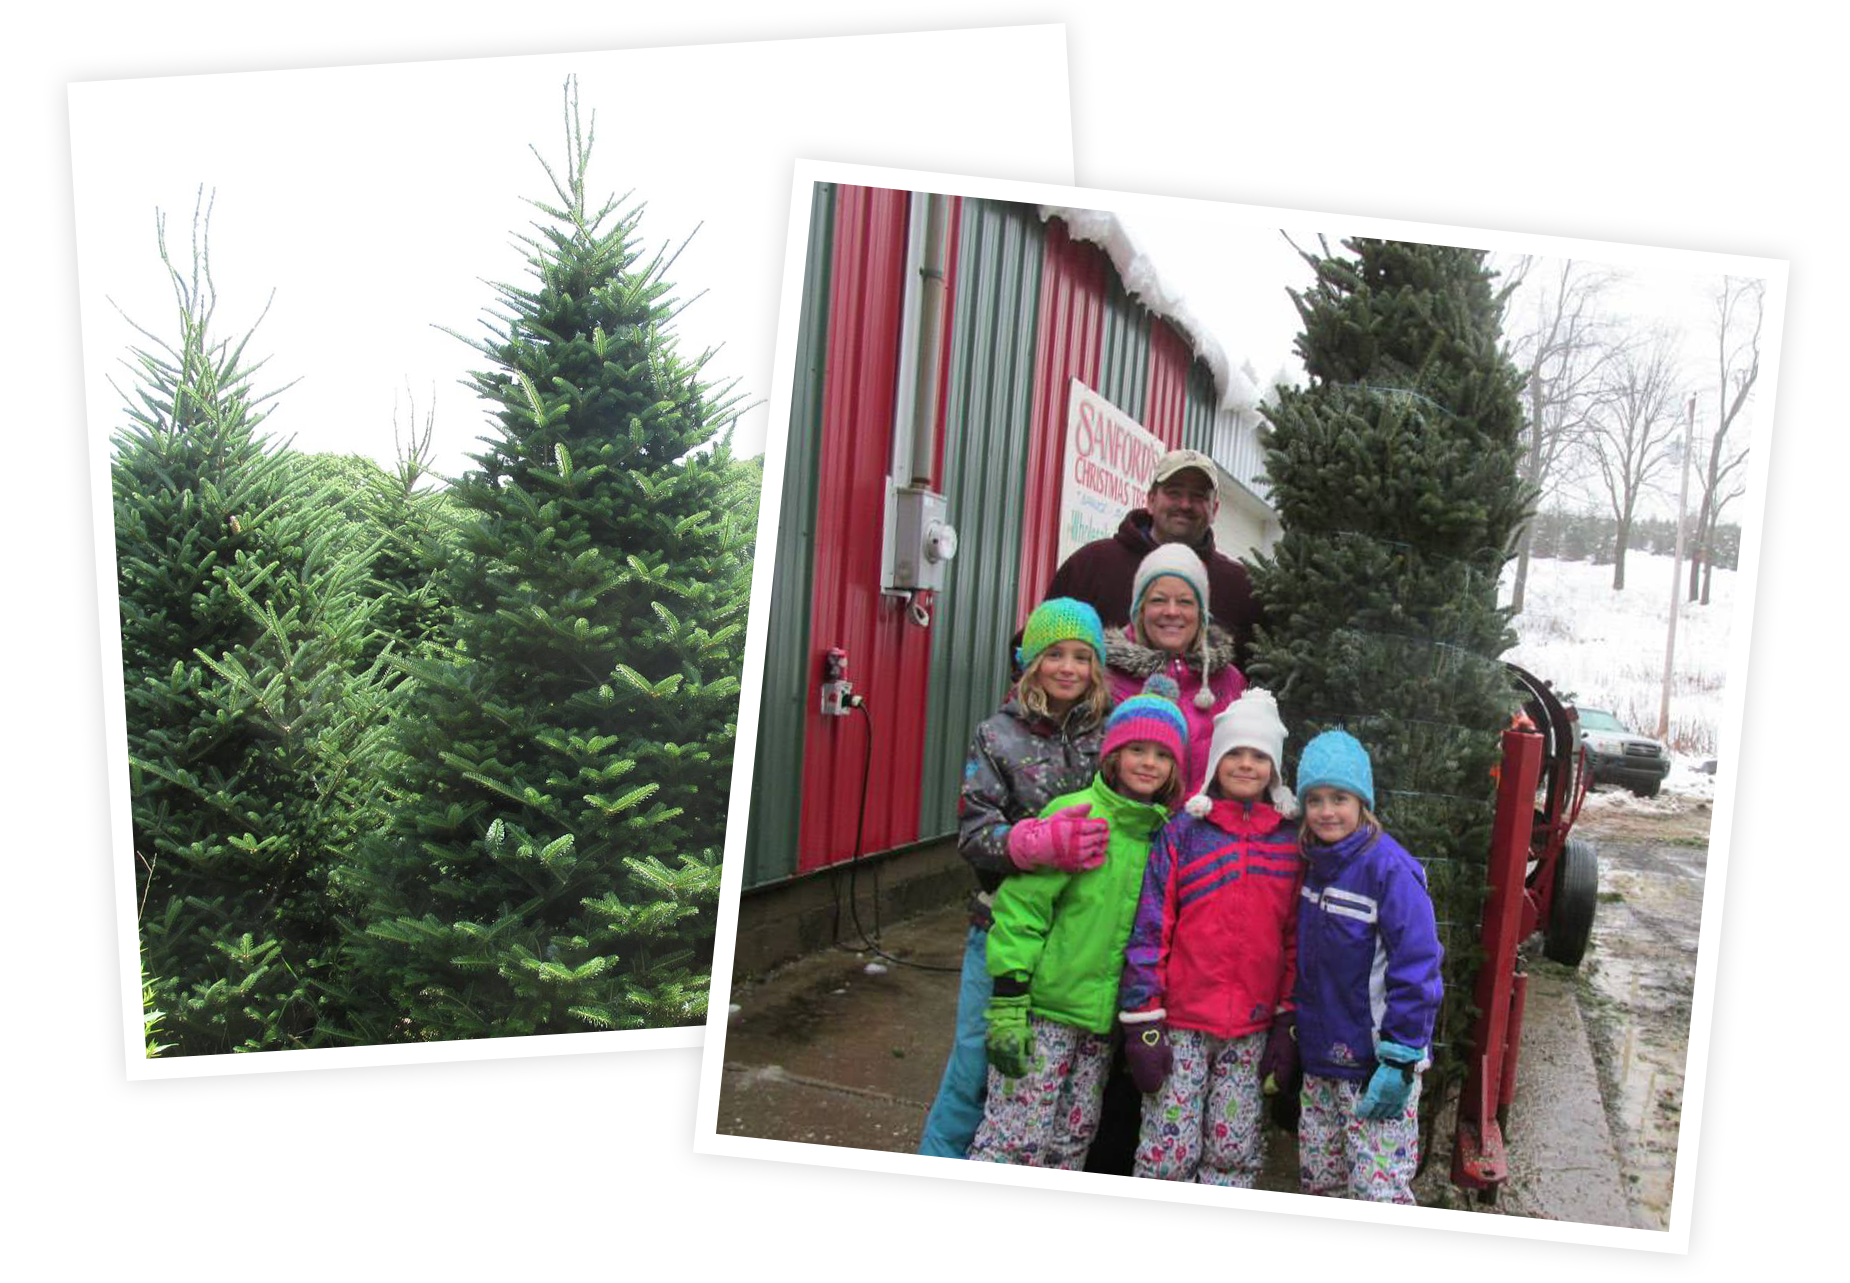 Cut Your Own Christmas Tree Near Me.Sanford Tree Farm Cut Your Own Christmas Trees